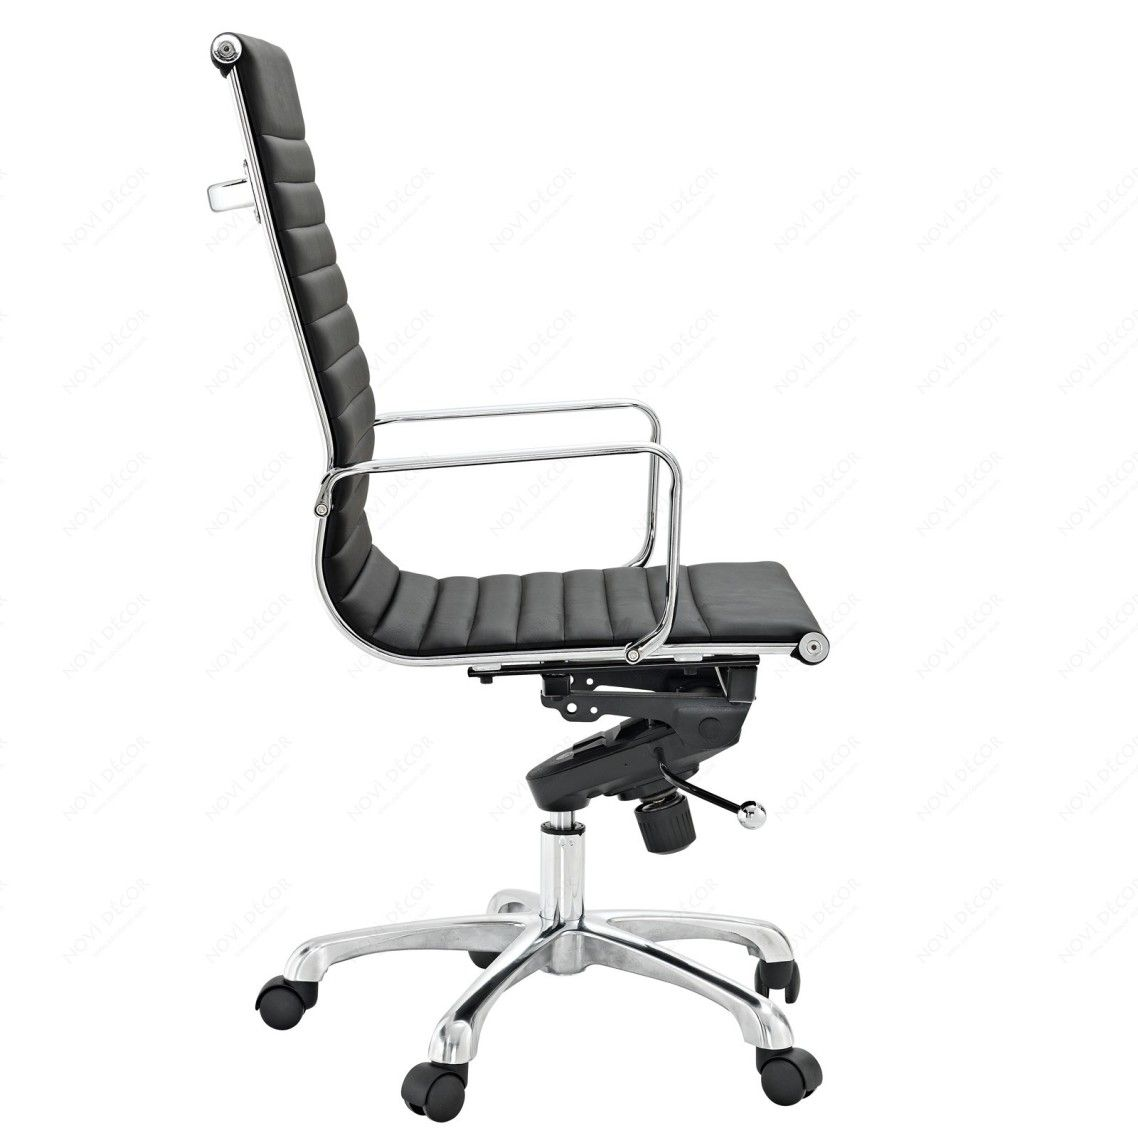 Counter Height Computer Chair Evenflo Expressions High Cover Extraordinary Office Chairs Design With Ribbed Back In Black Vinyl And Chromed Steel Frame Also Light Aluminum Base Five